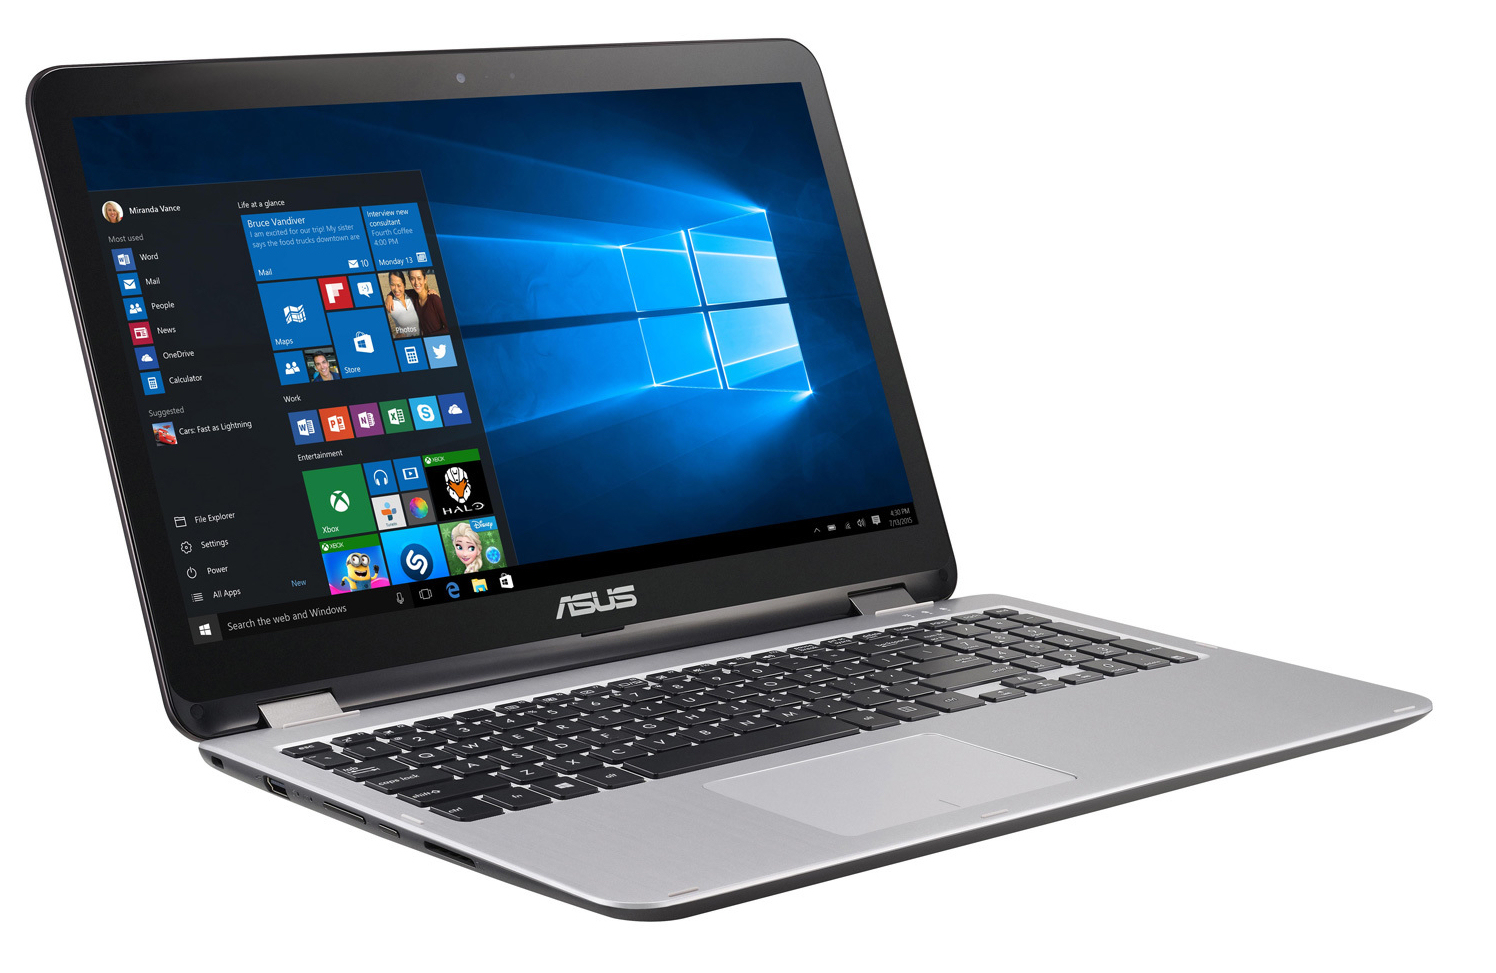 ASUS VIVOBOOK FLIP TP501UB REALTEK AUDIO TREIBER WINDOWS 8